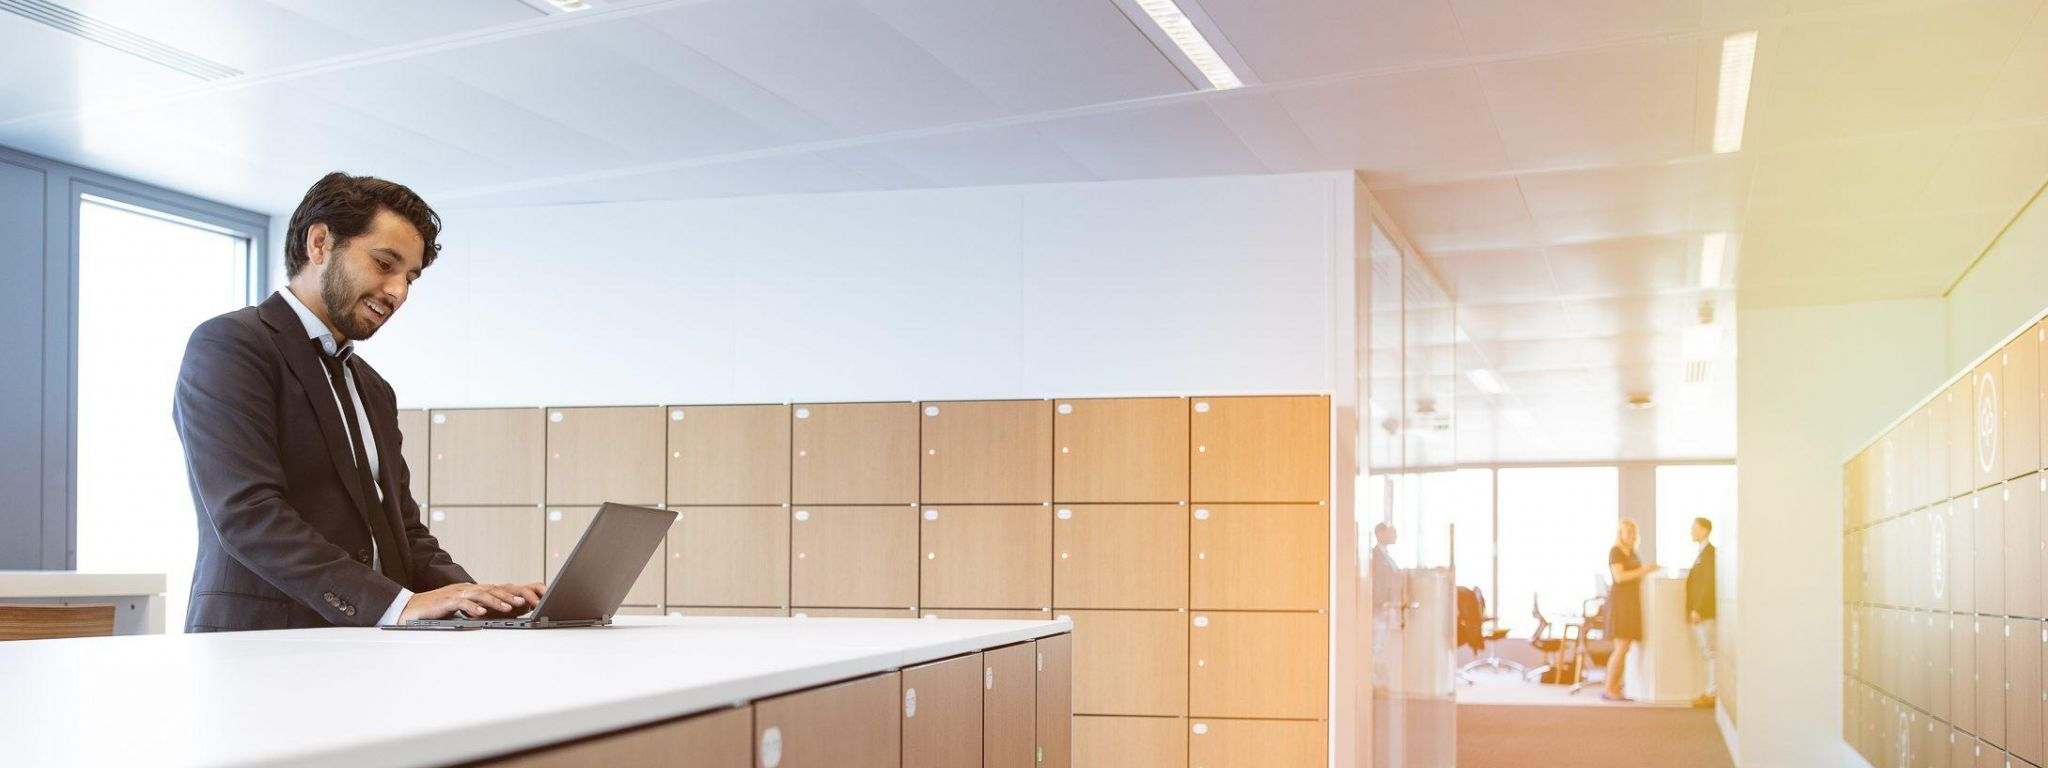 Encouraging Dynamic Workplaces with a Smart Locker Management System